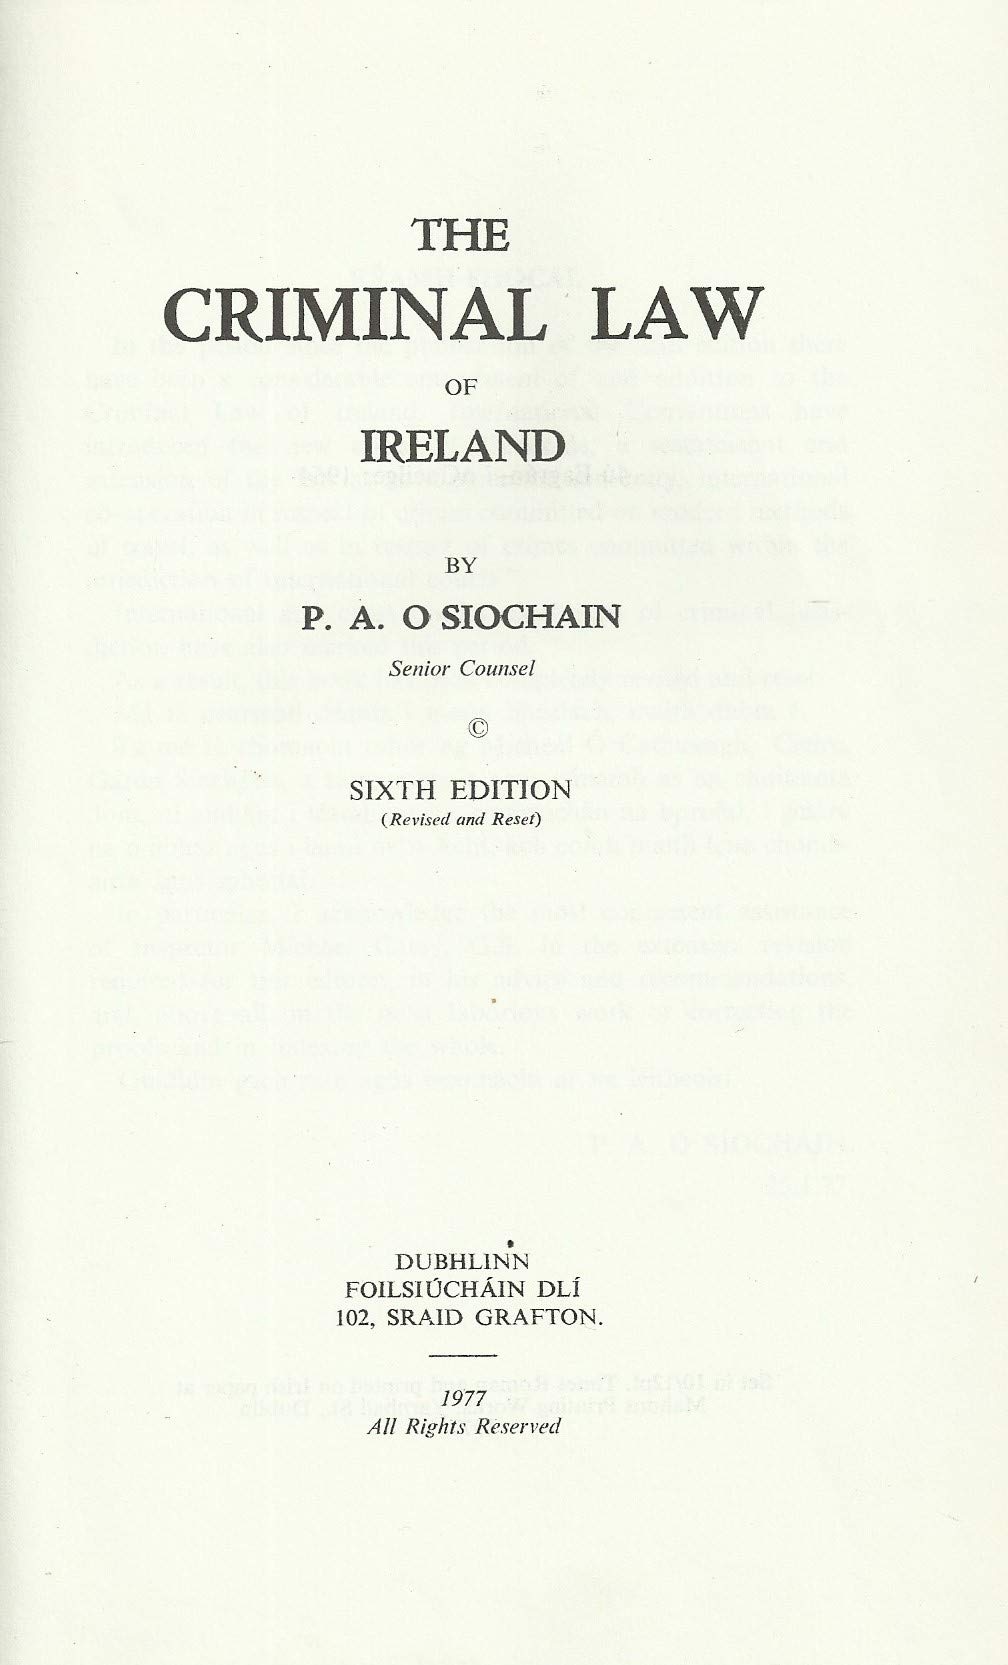 The Criminal Law of Ireland - Sixth Edition (6th Edition Revised and Reset)